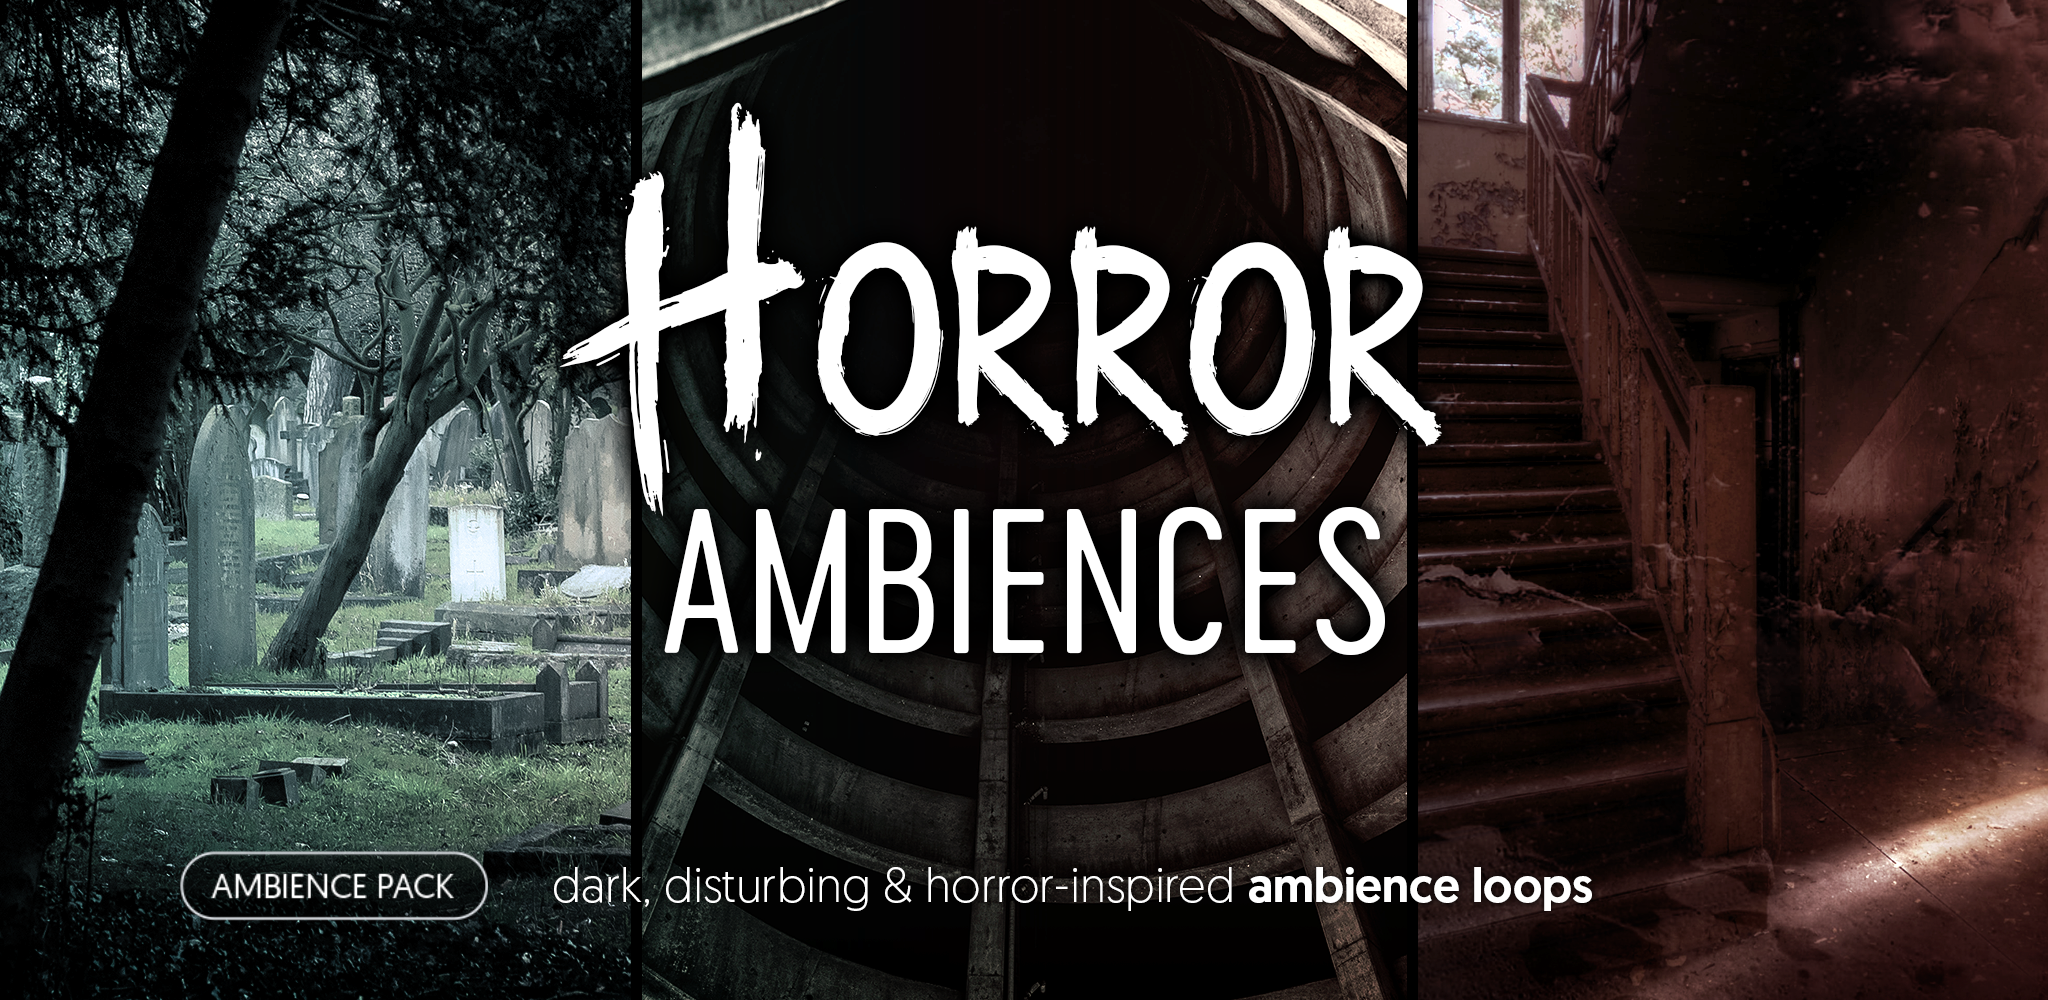 Horror Ambiences - ambience pack